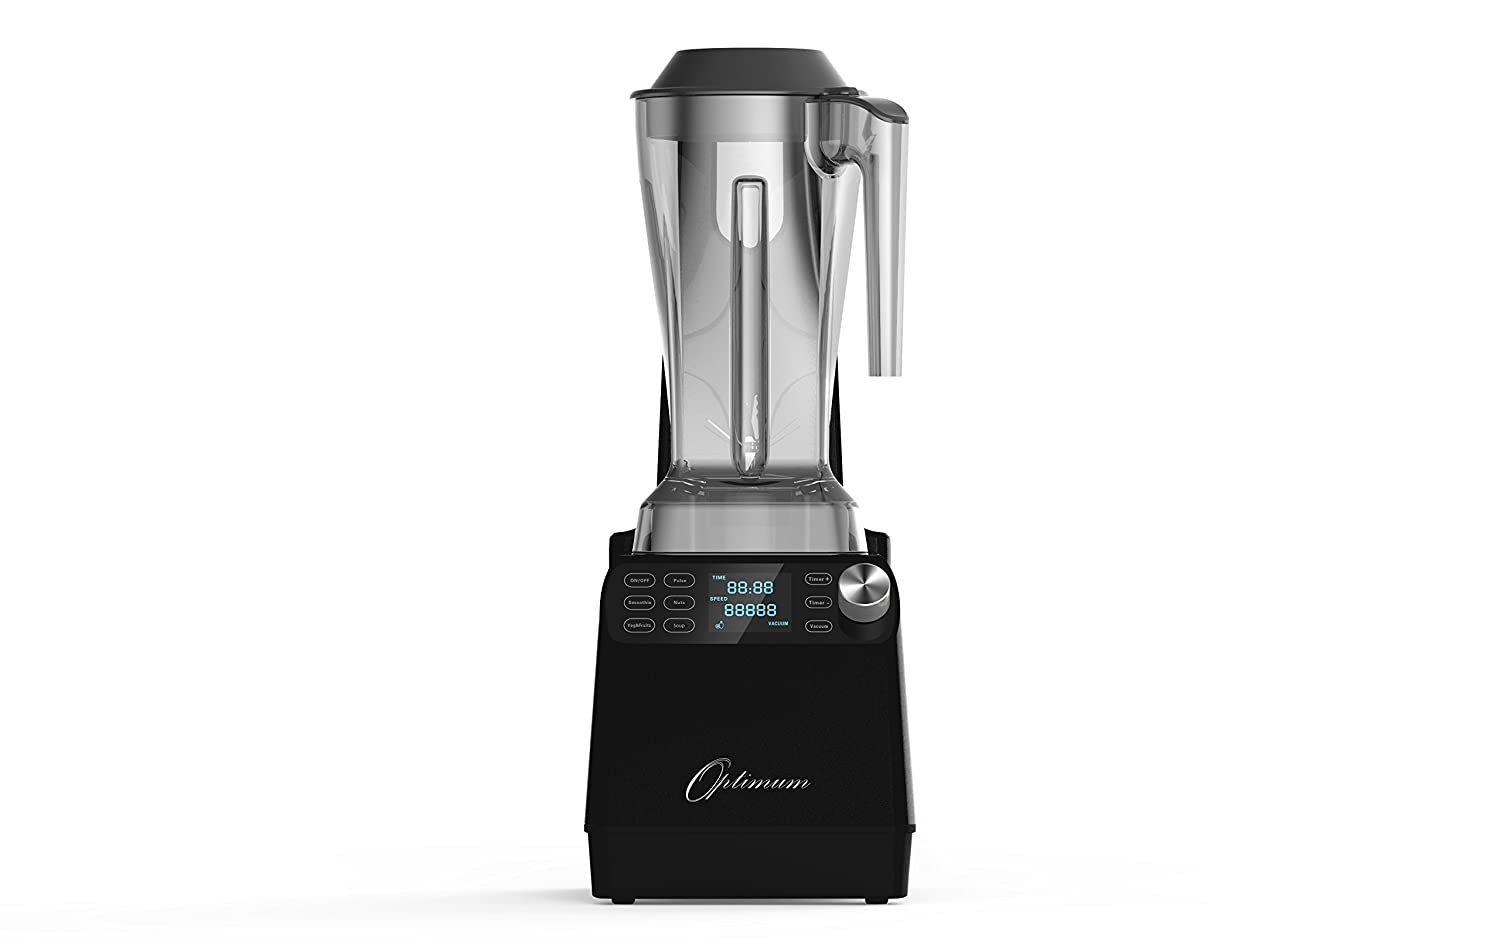 Optimum Vacuum Sealed Auto High-Speed Blender VAC2 with BPA-Free Components, Quiet Blender, Virtually No Foam, Heavy Duty Motor 2238W, Tamper Tool, 10 year Warranty (Black)